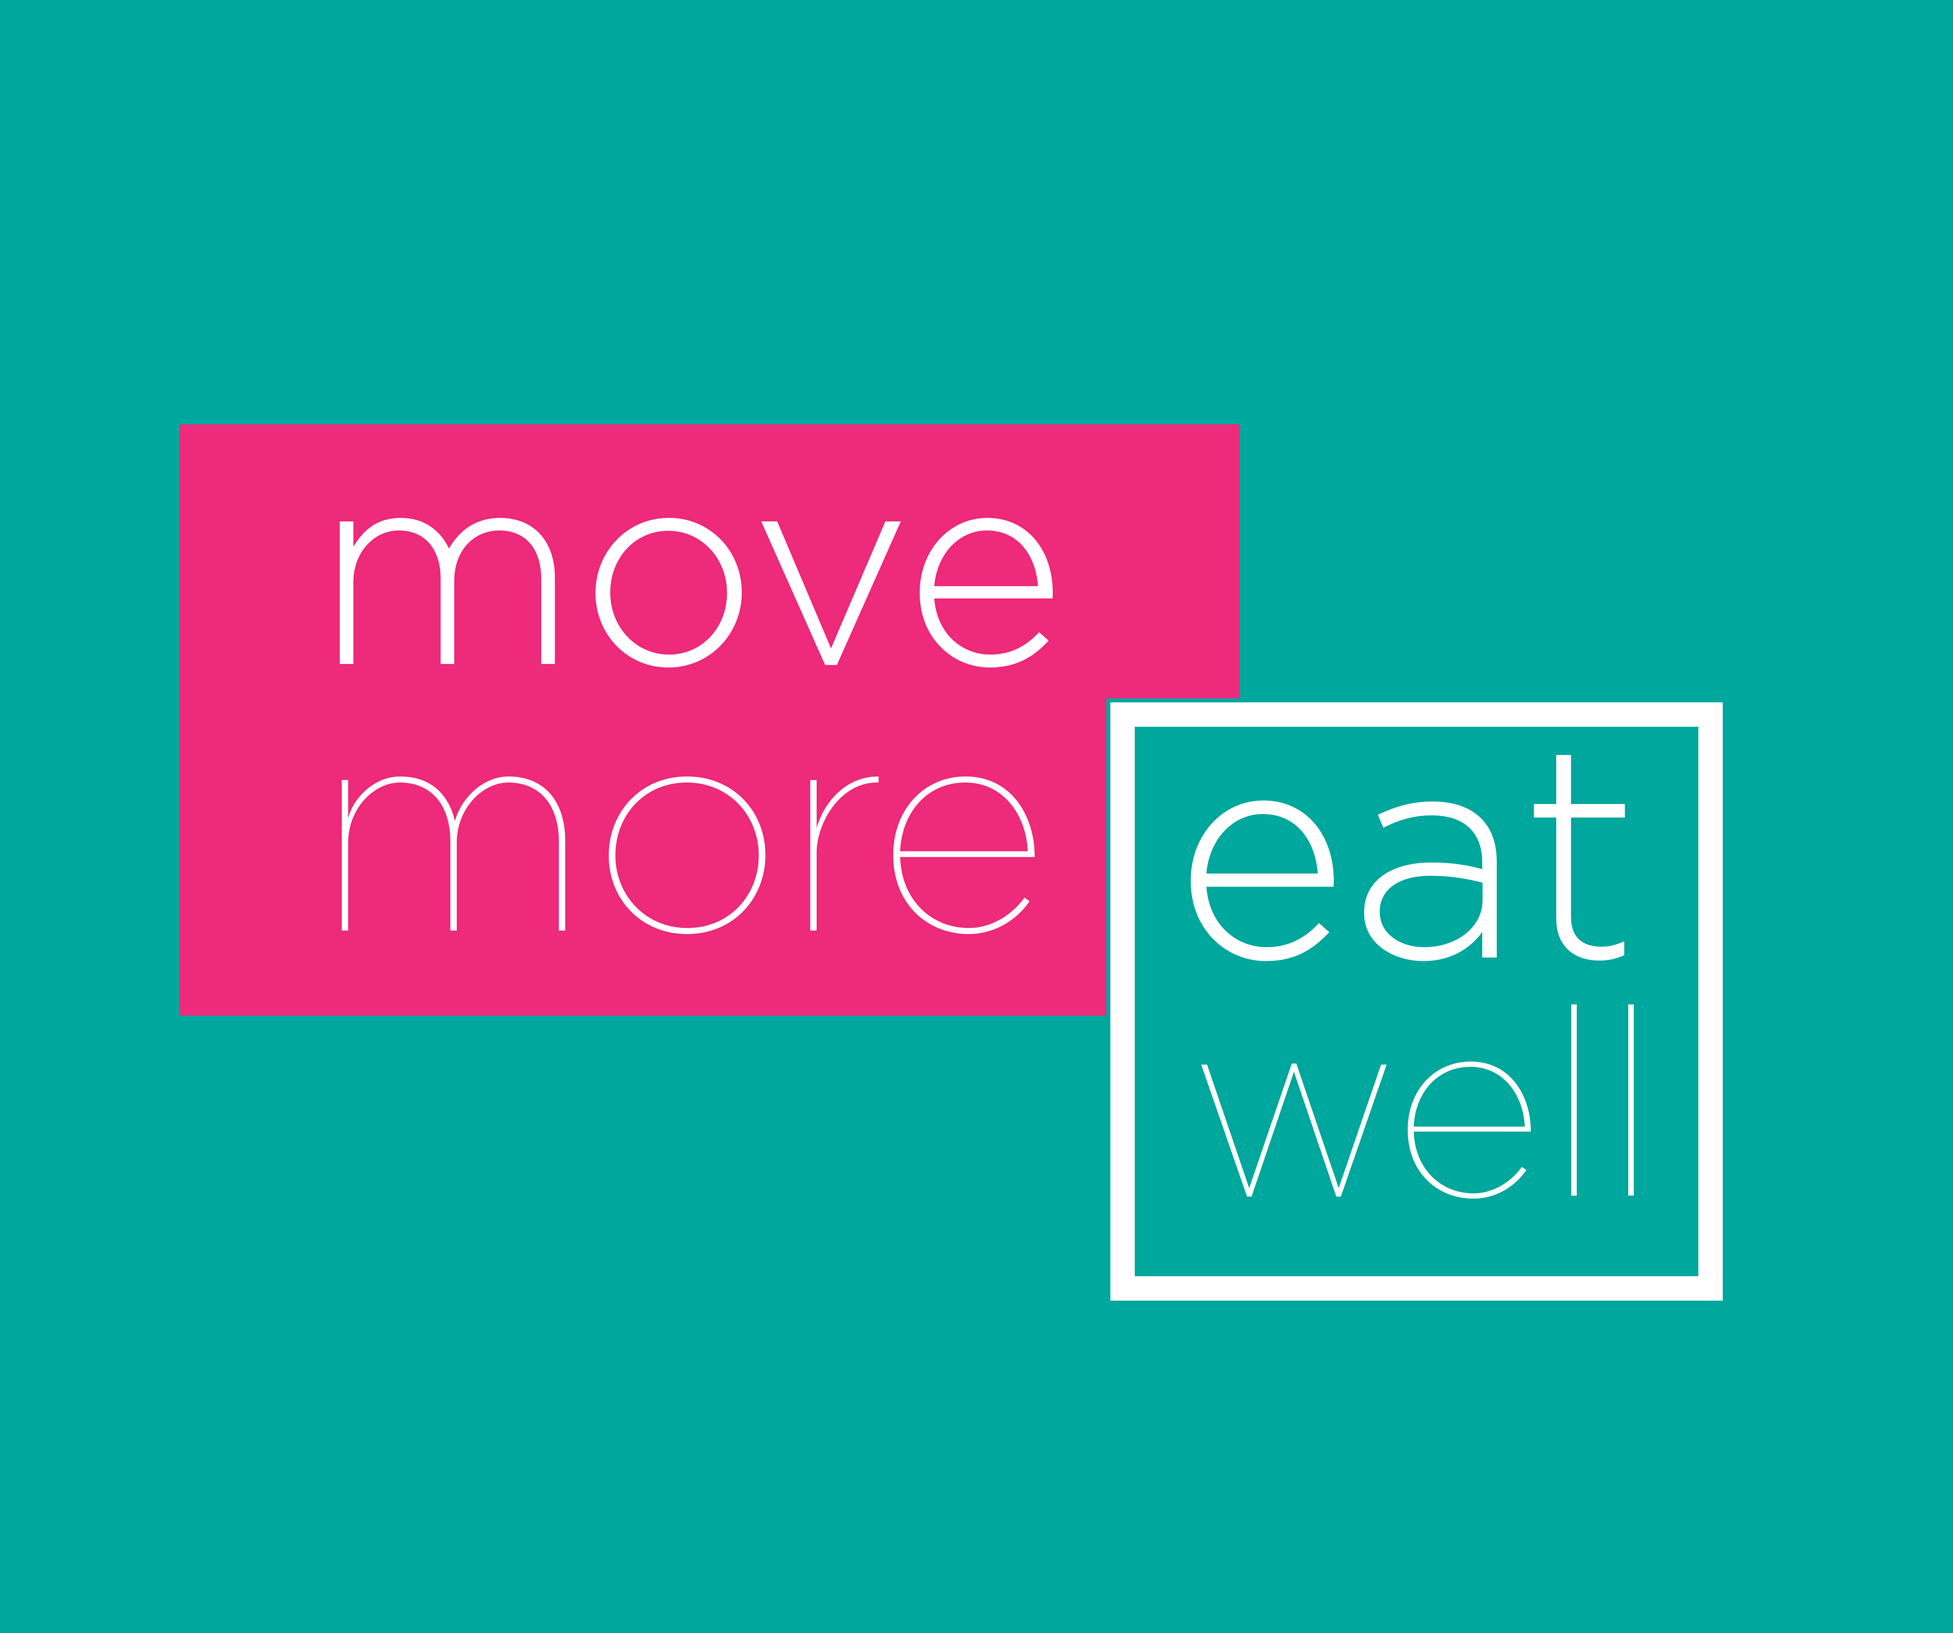 logo_design_move_more_eat_well_005.png